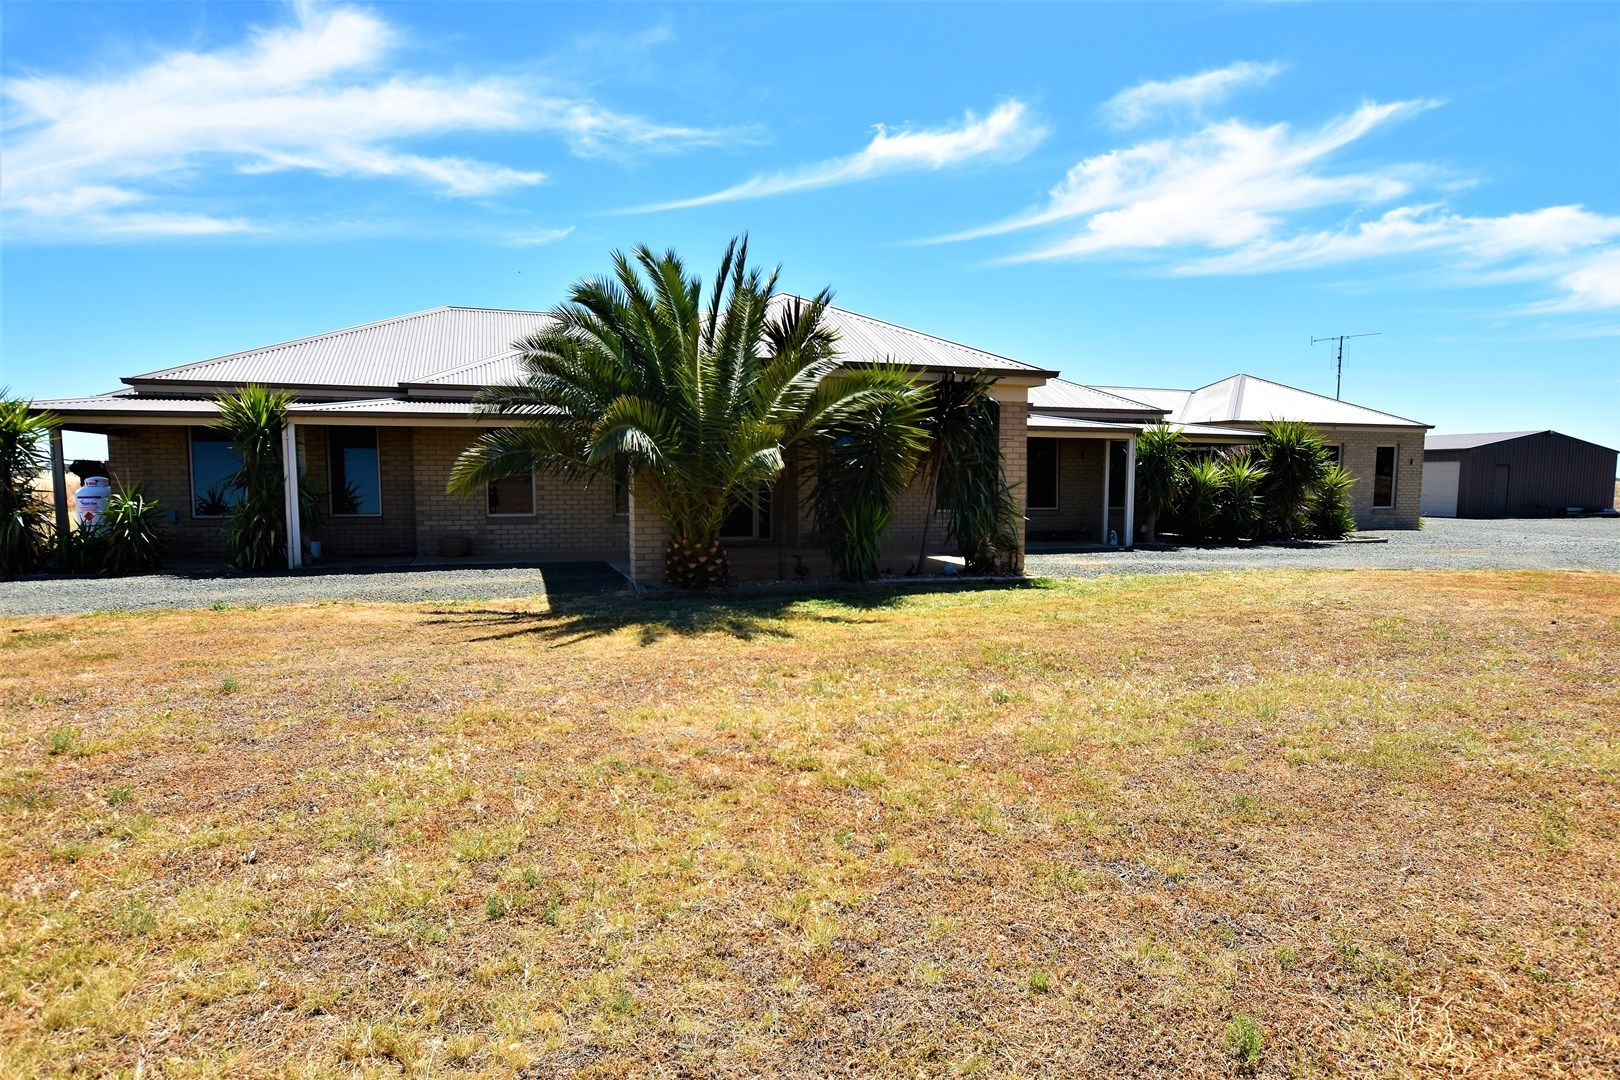 8510 Murray Valley Highway, Echuca VIC 3564, Image 0